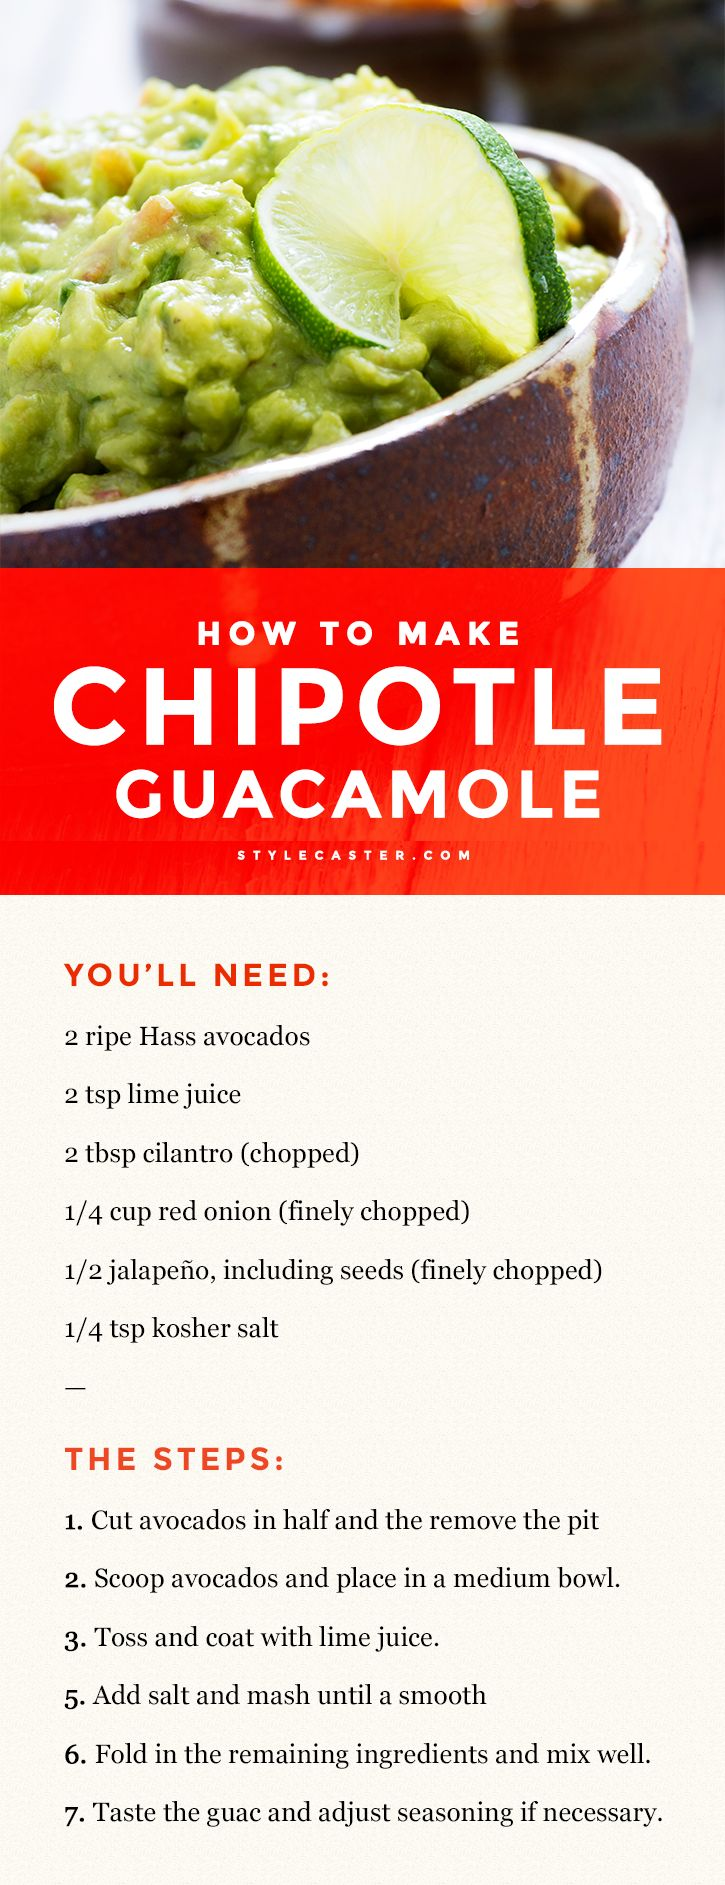 Chipotle revealed its exact guacamole recipe people